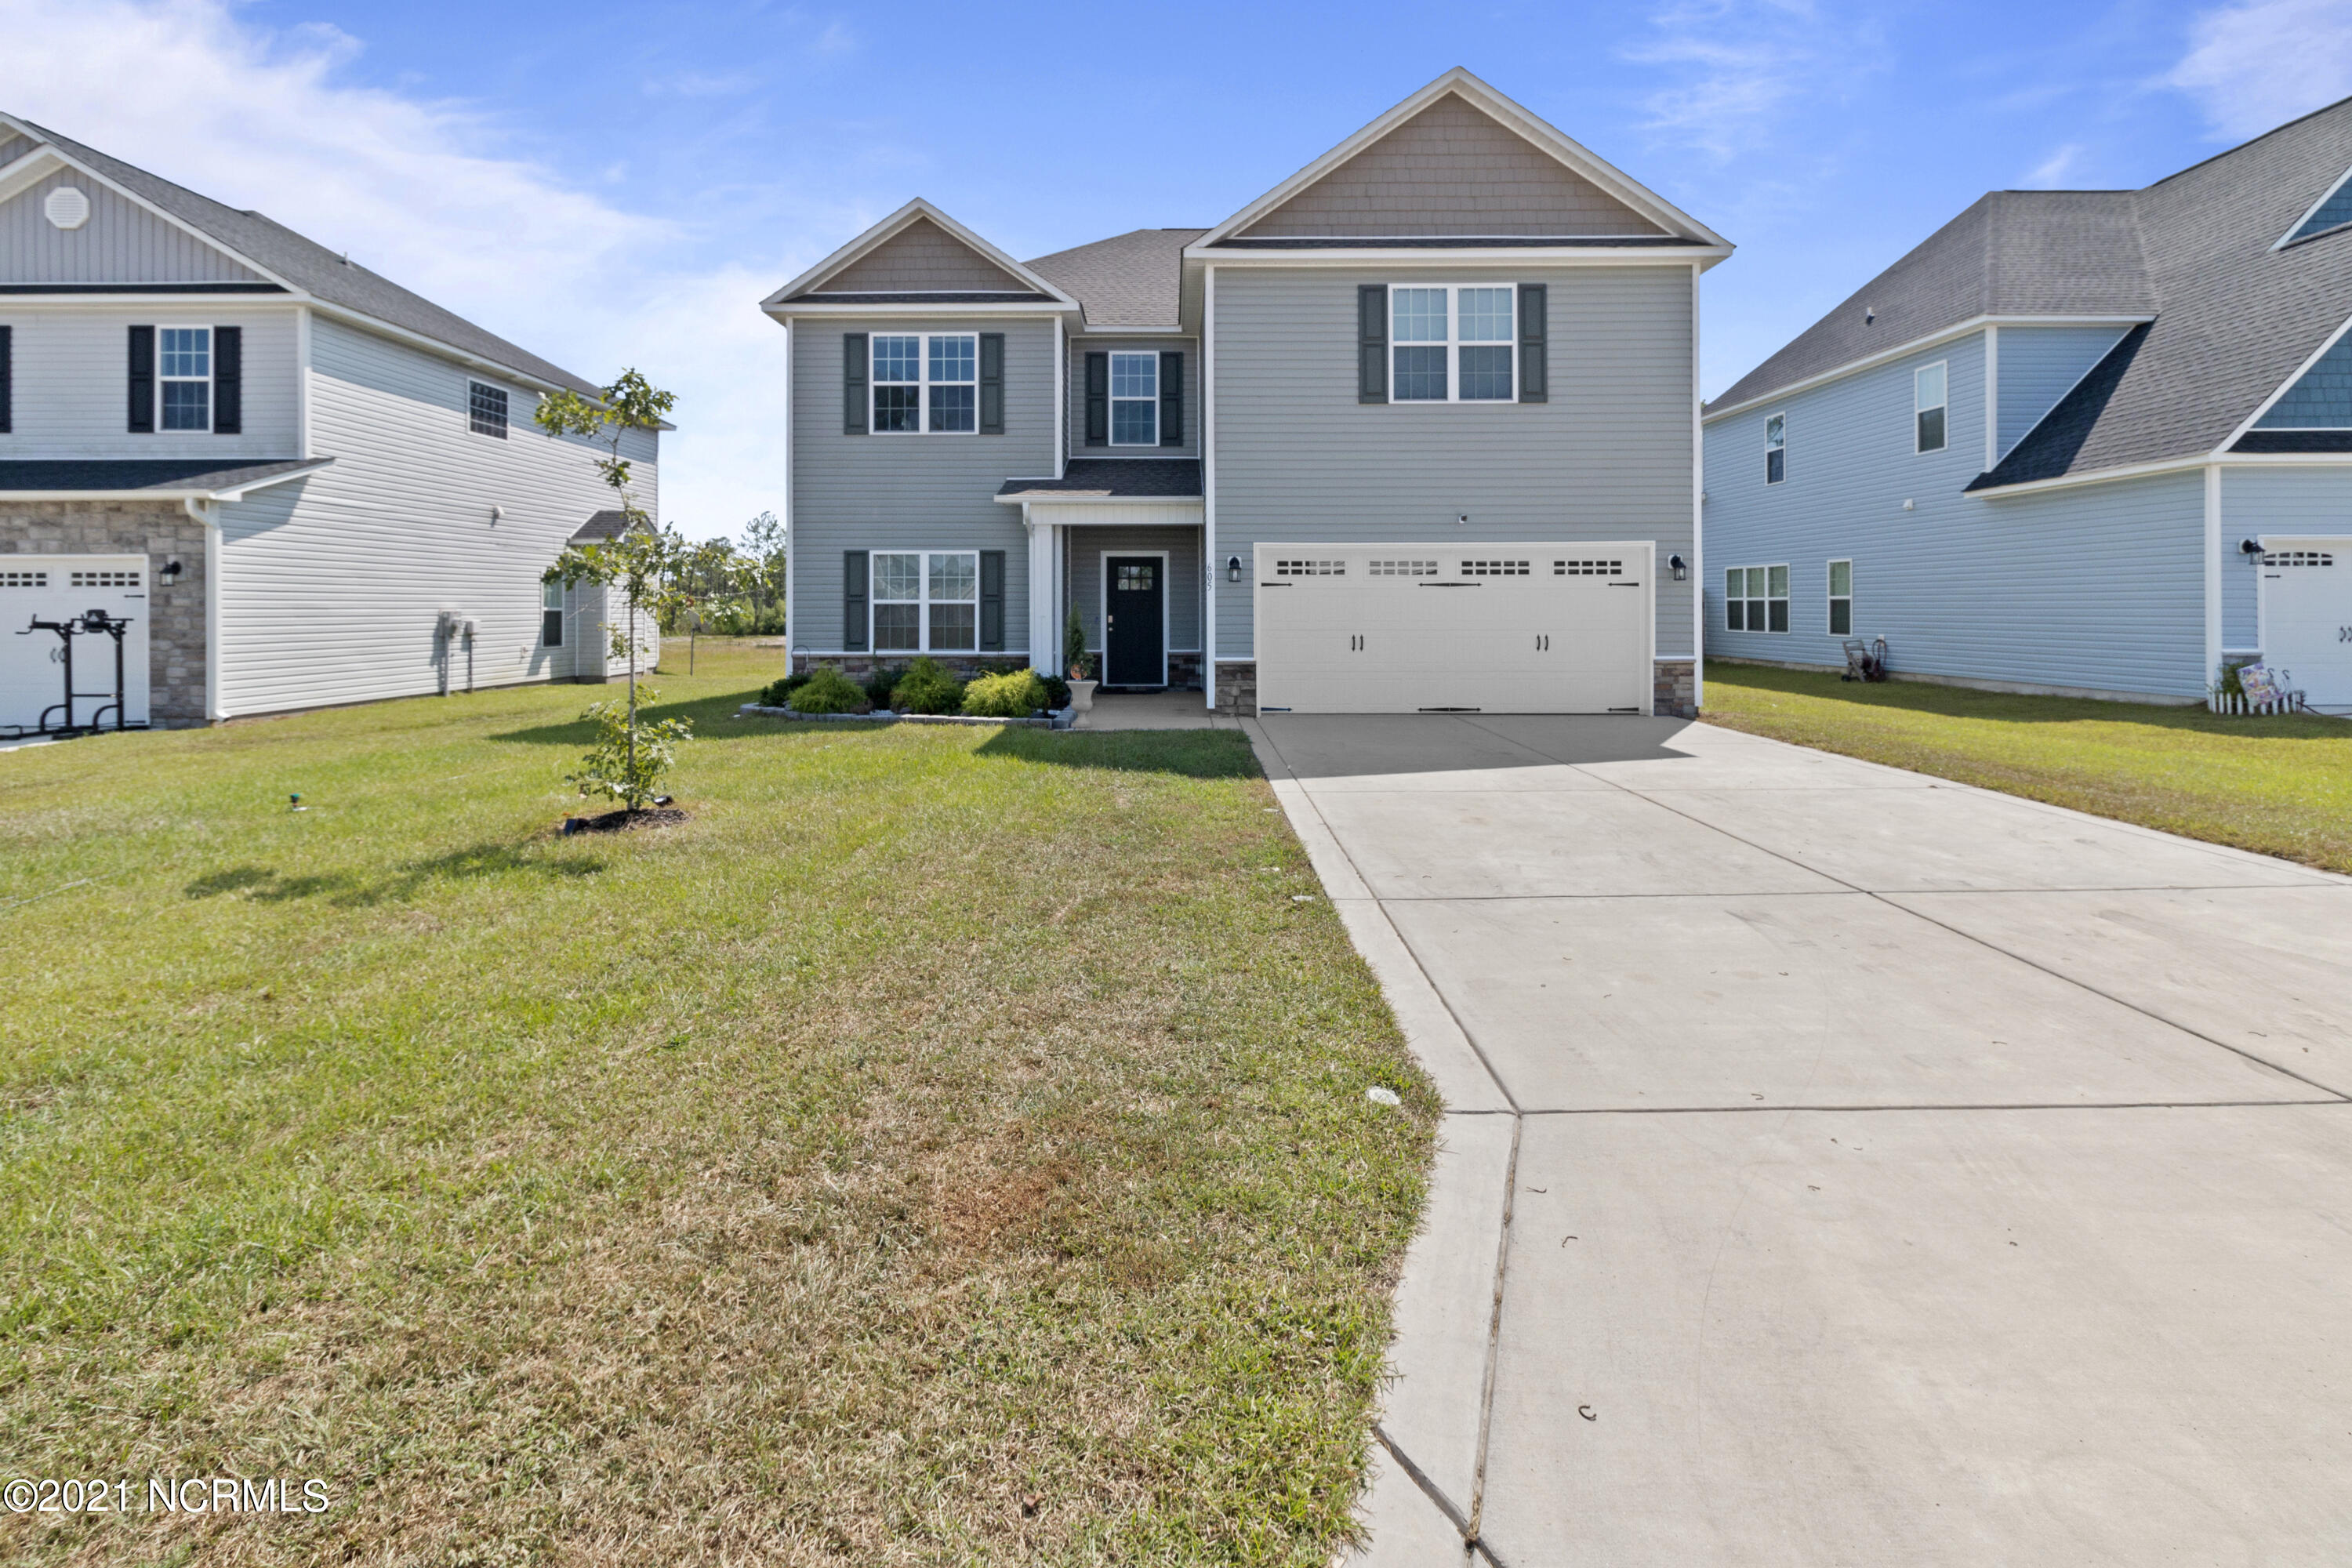 Beautiful home located in the sought after community of Oyster Landing in Sneads Ferry! Home is located minutes away from the beach.  And features an over-sized kitchen, formal dining room and living room perfect for entertaining. There is a bedroom downstairs and a full bathroom downstairs.  Upstairs you will find a large loft and three other bedrooms, a huge Master bedroom and huge walk-in closet. This home is a must see!